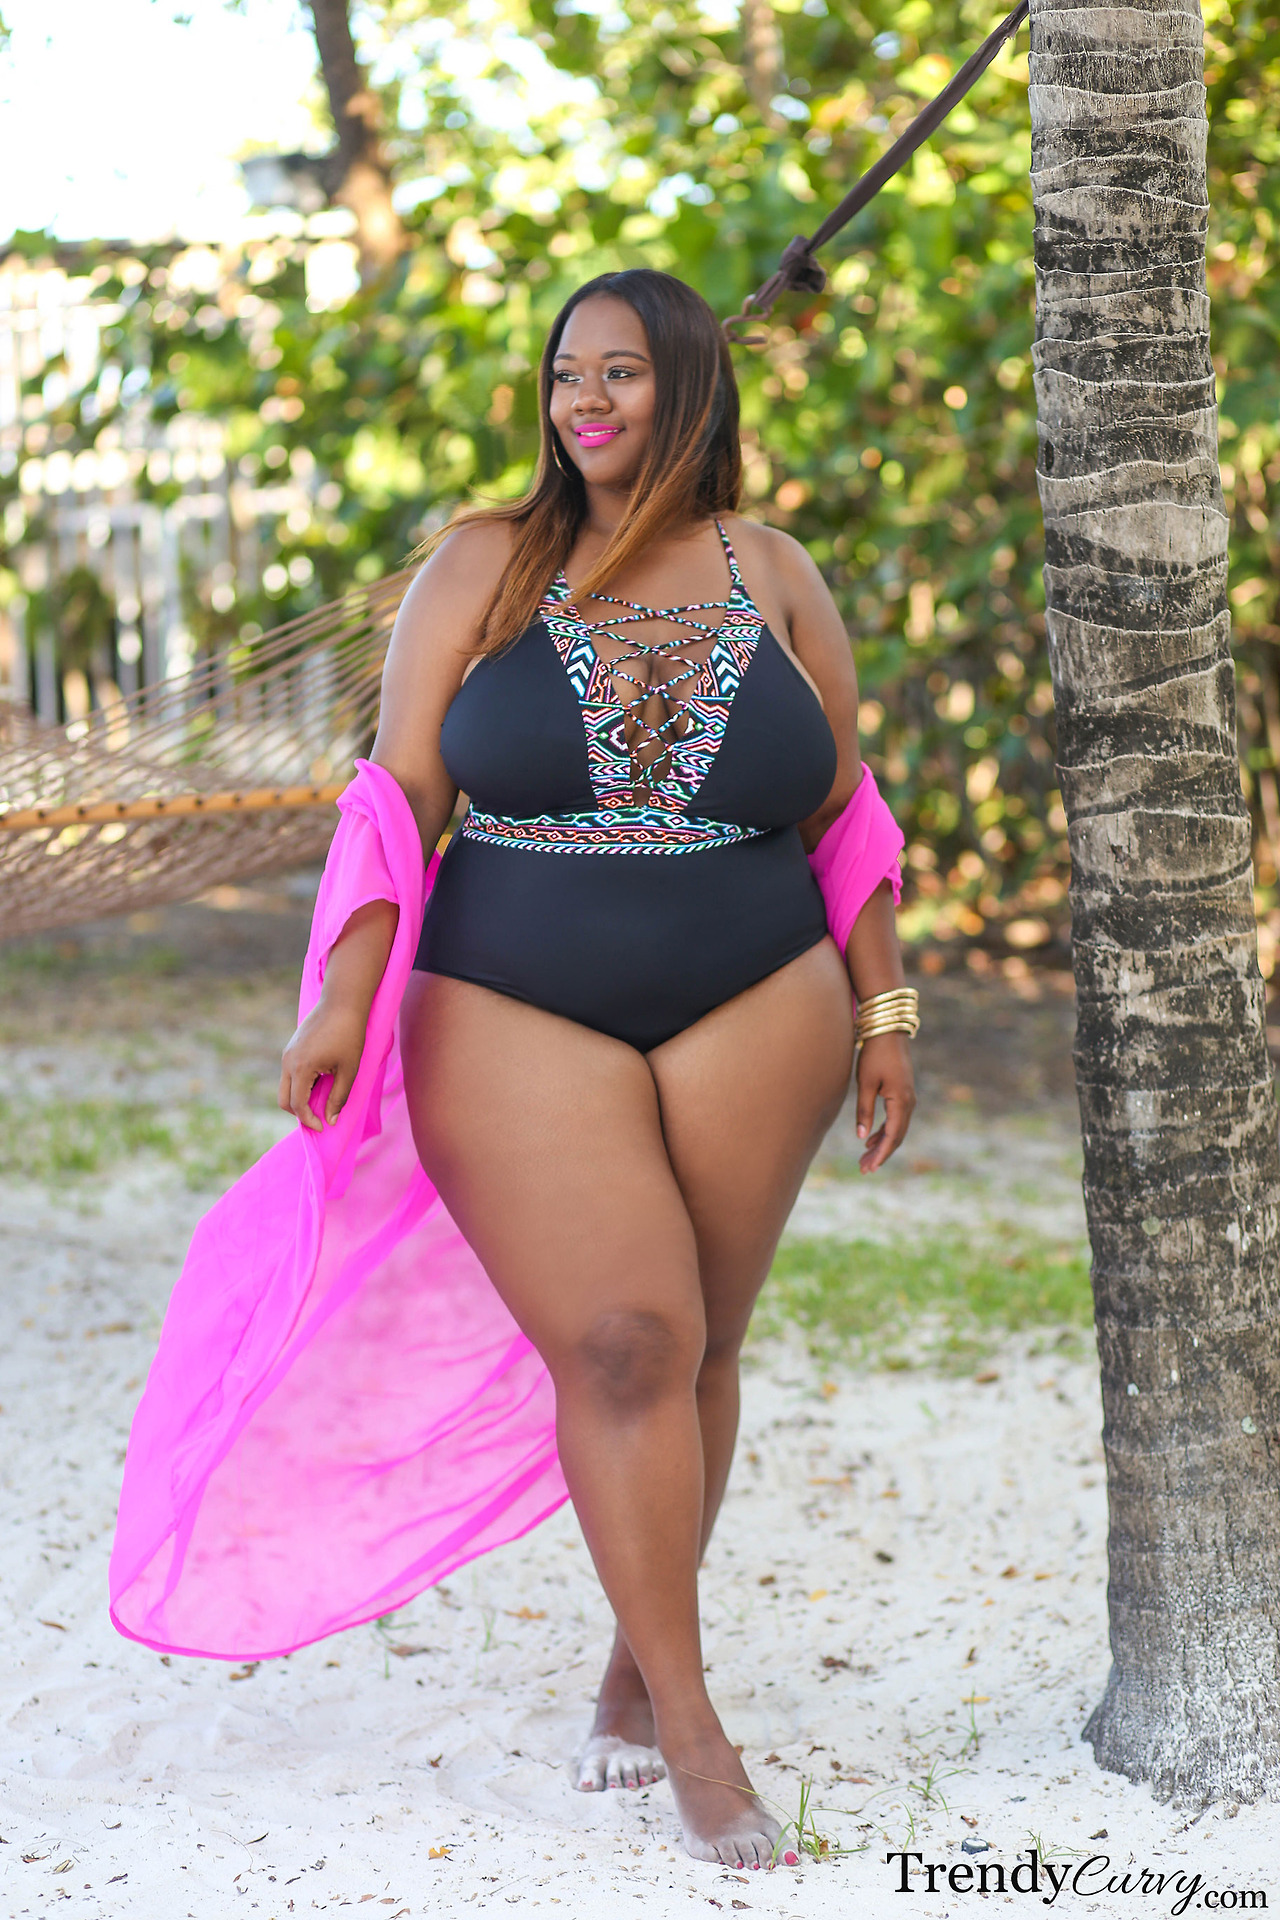 Party Outfit Für Mollige Bbw And More Trendycurvy Plus Size Swimwear Lookbook